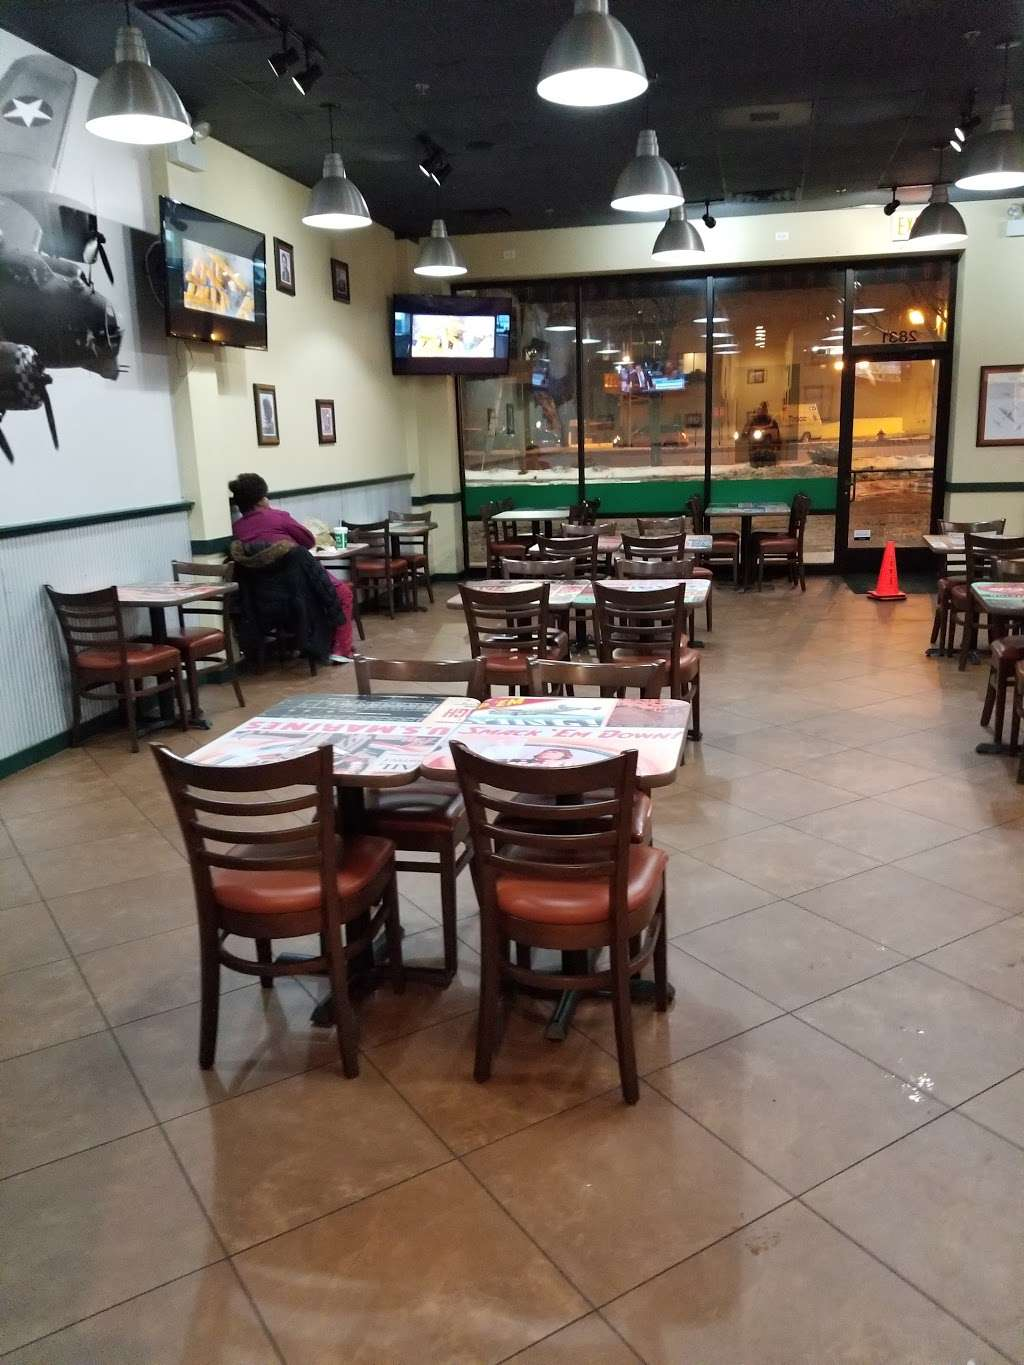 Wingstop - restaurant  | Photo 9 of 10 | Address: 2831 W 95th St, Evergreen Park, IL 60805, USA | Phone: (708) 425-9464